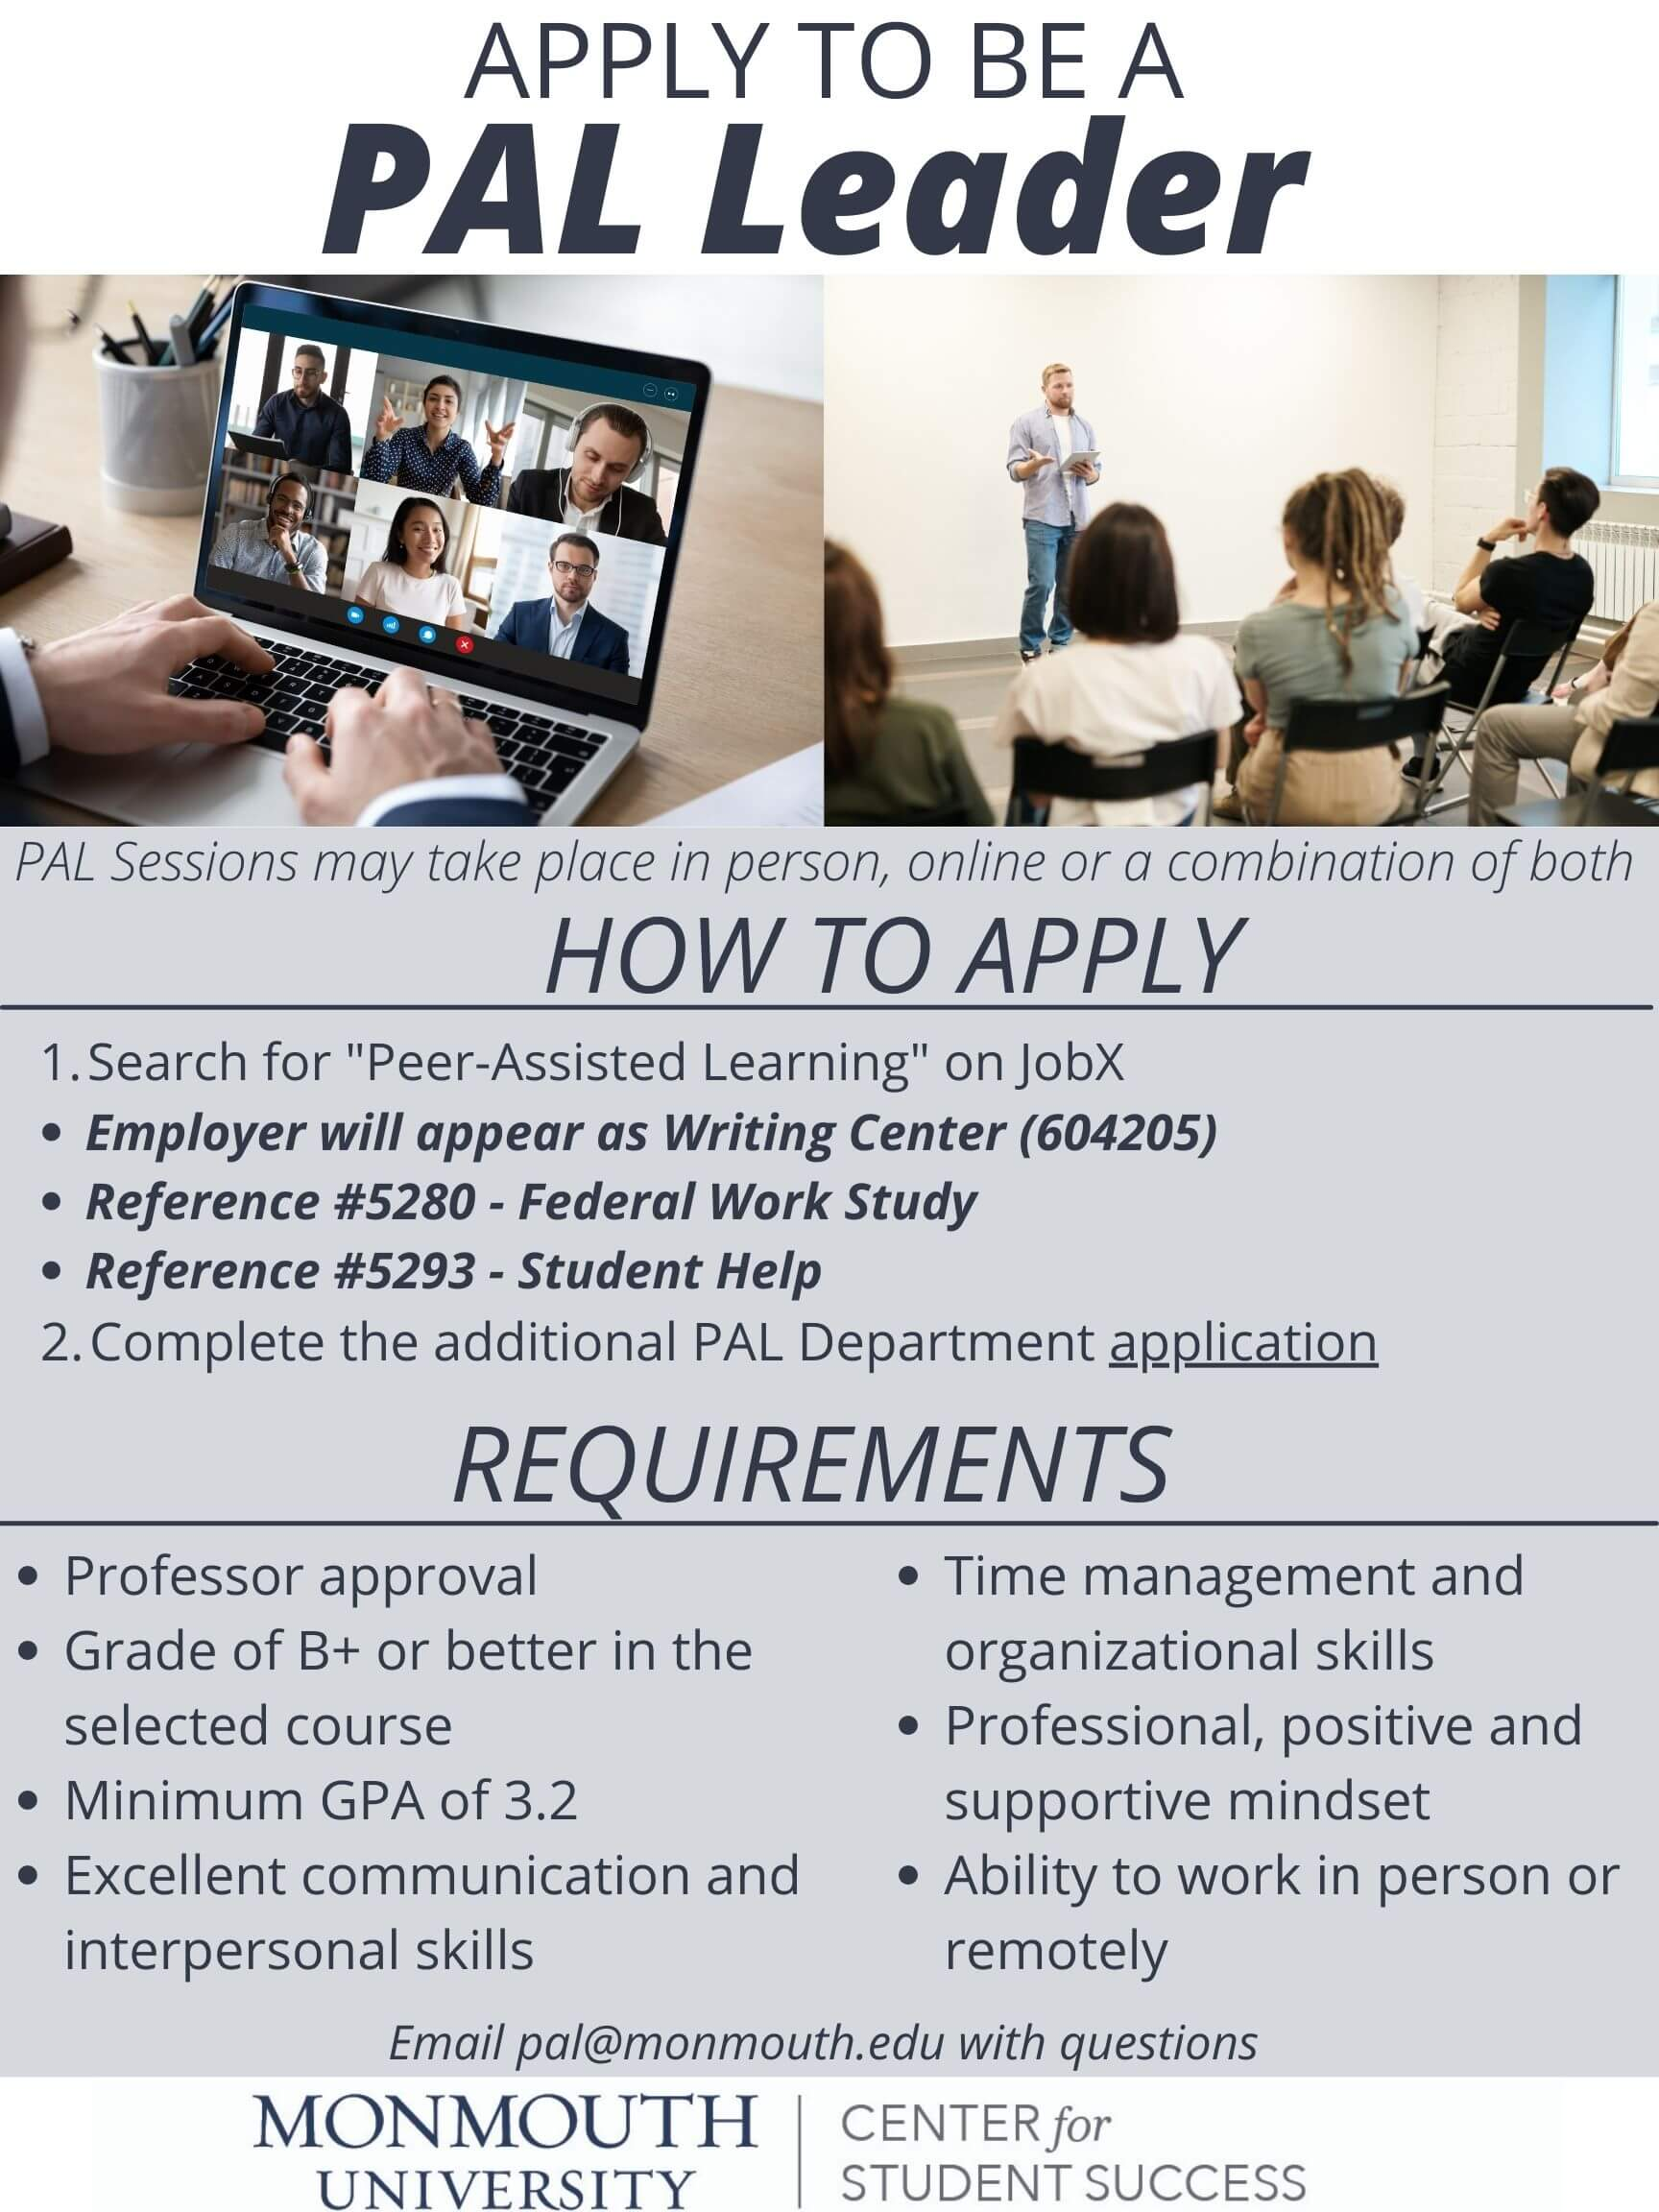 Image of flyer on How To Apply to be a PAL Leader: Click or tap to access the online application.